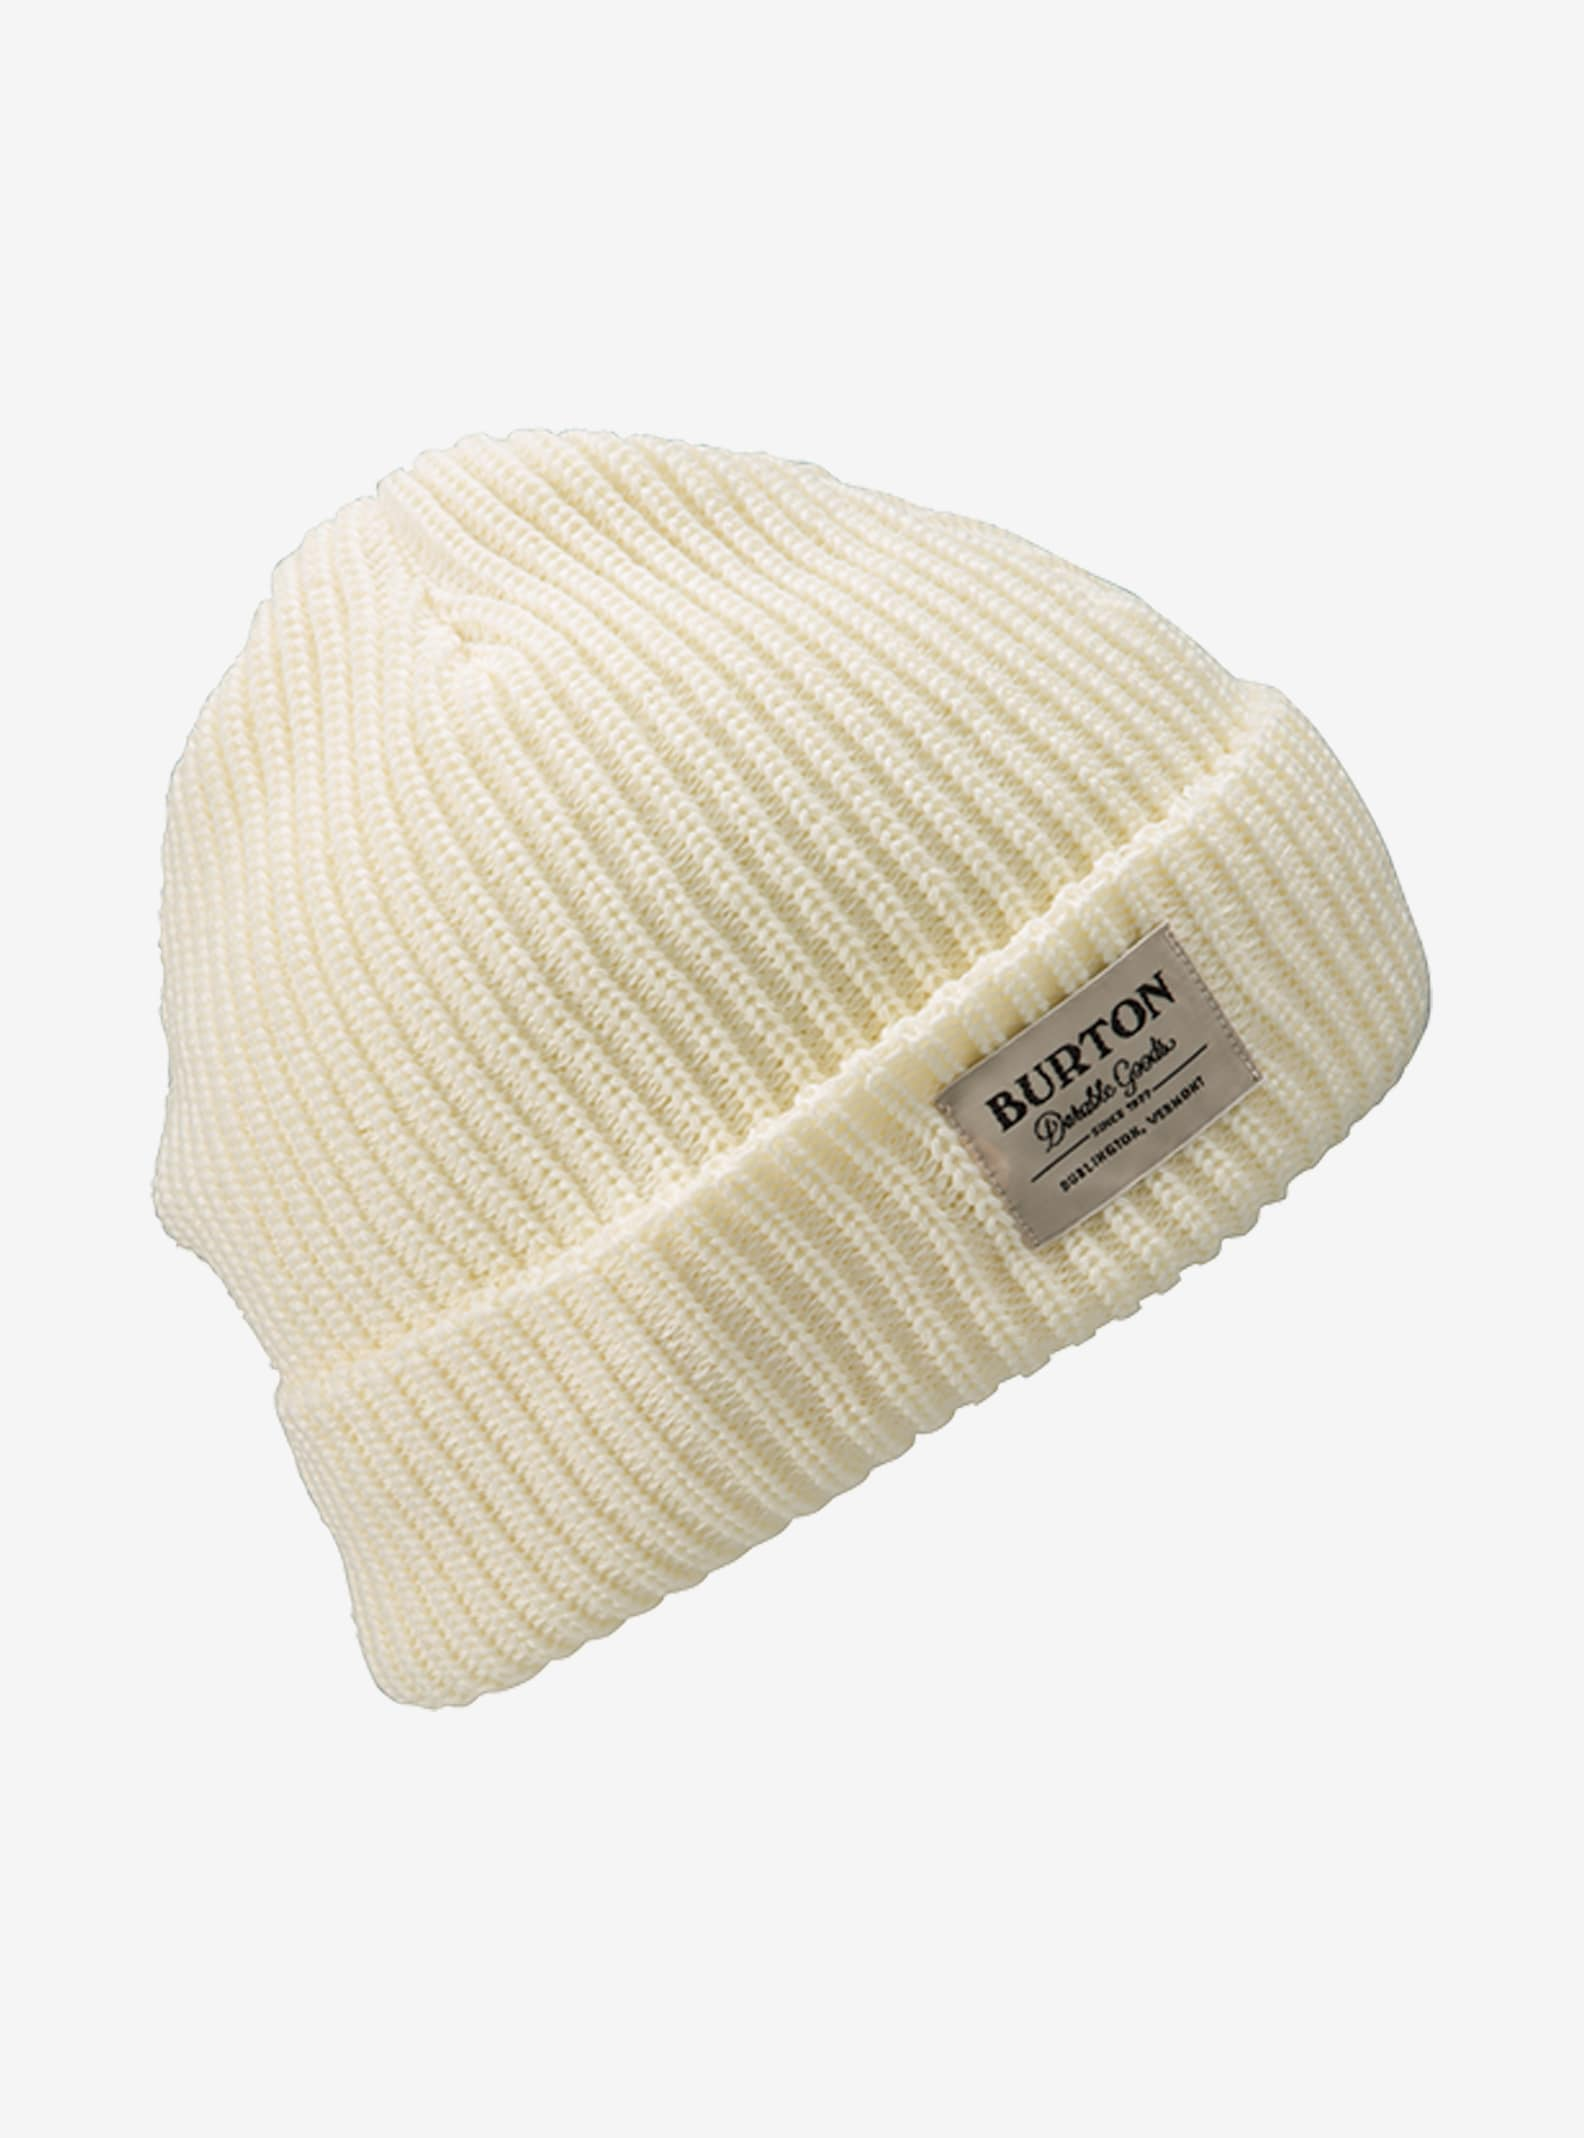 Burton VT. Beanie shown in Canvas